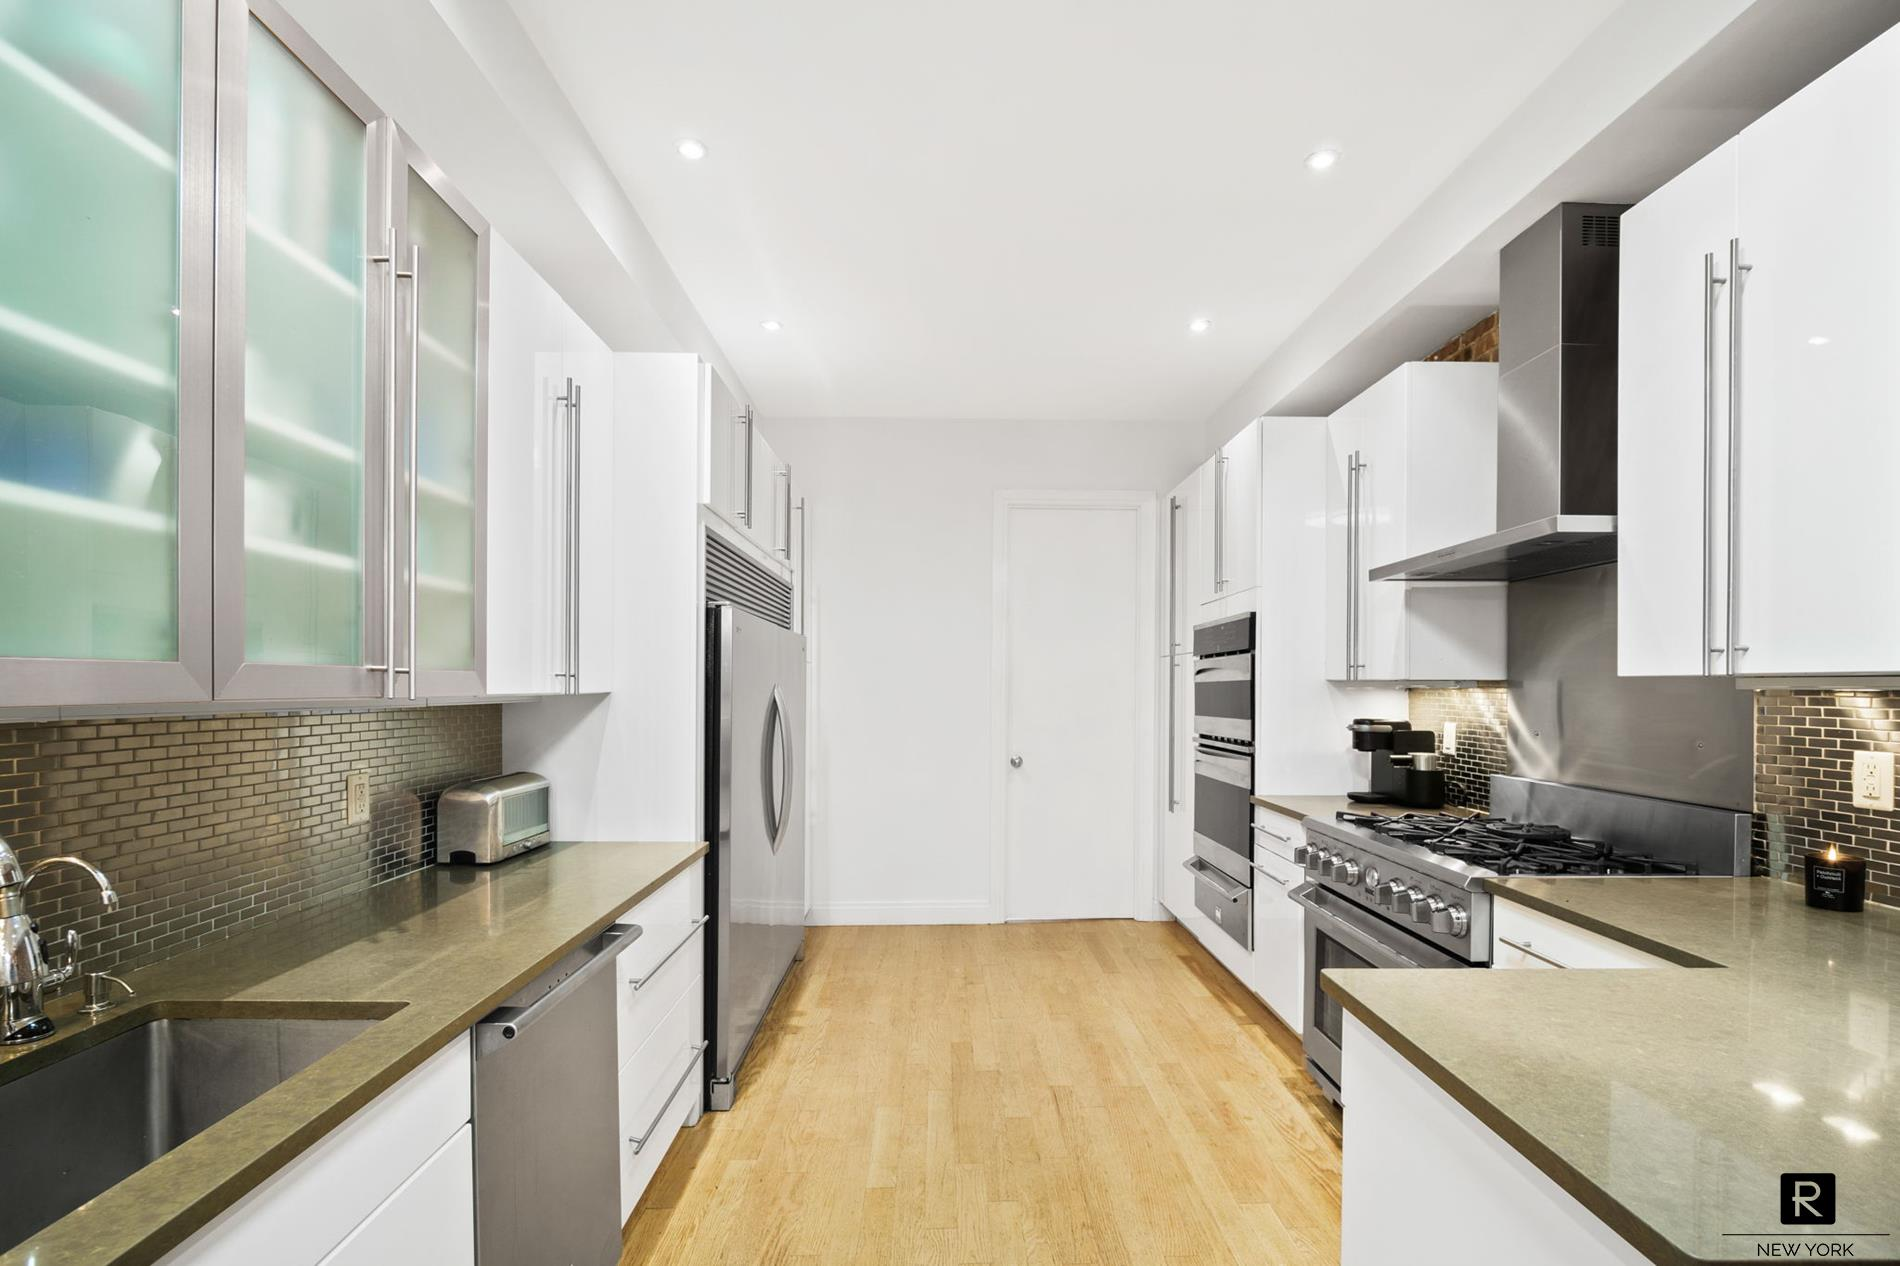 Apartment for sale at 168 East 90th Street, Apt 1-E